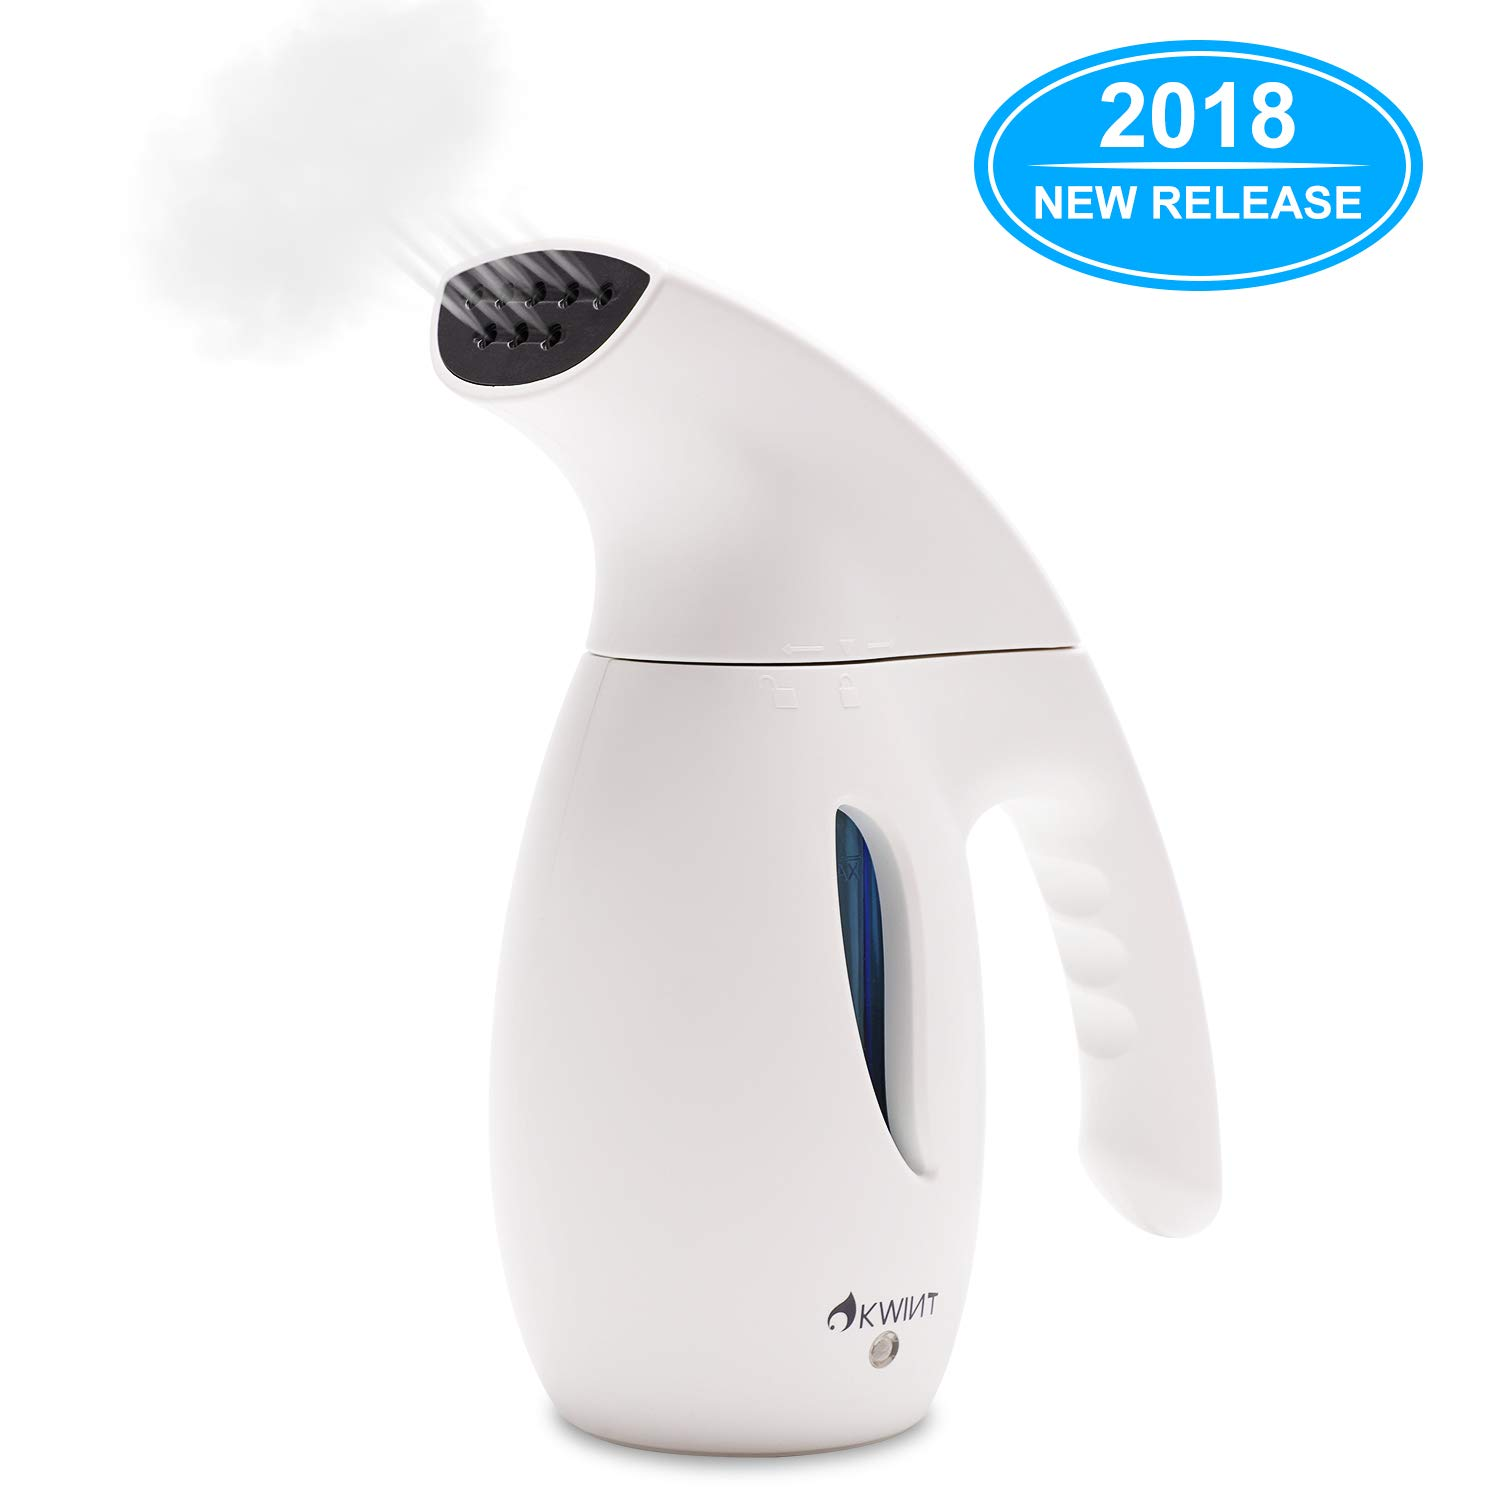 OKWINT Garment Steamer 180ml Portable Handheld Fabric Steamer Fast Heat-up Powerful Travel Garment Clothes Steamer High Capacity Home Travel by OKWINT